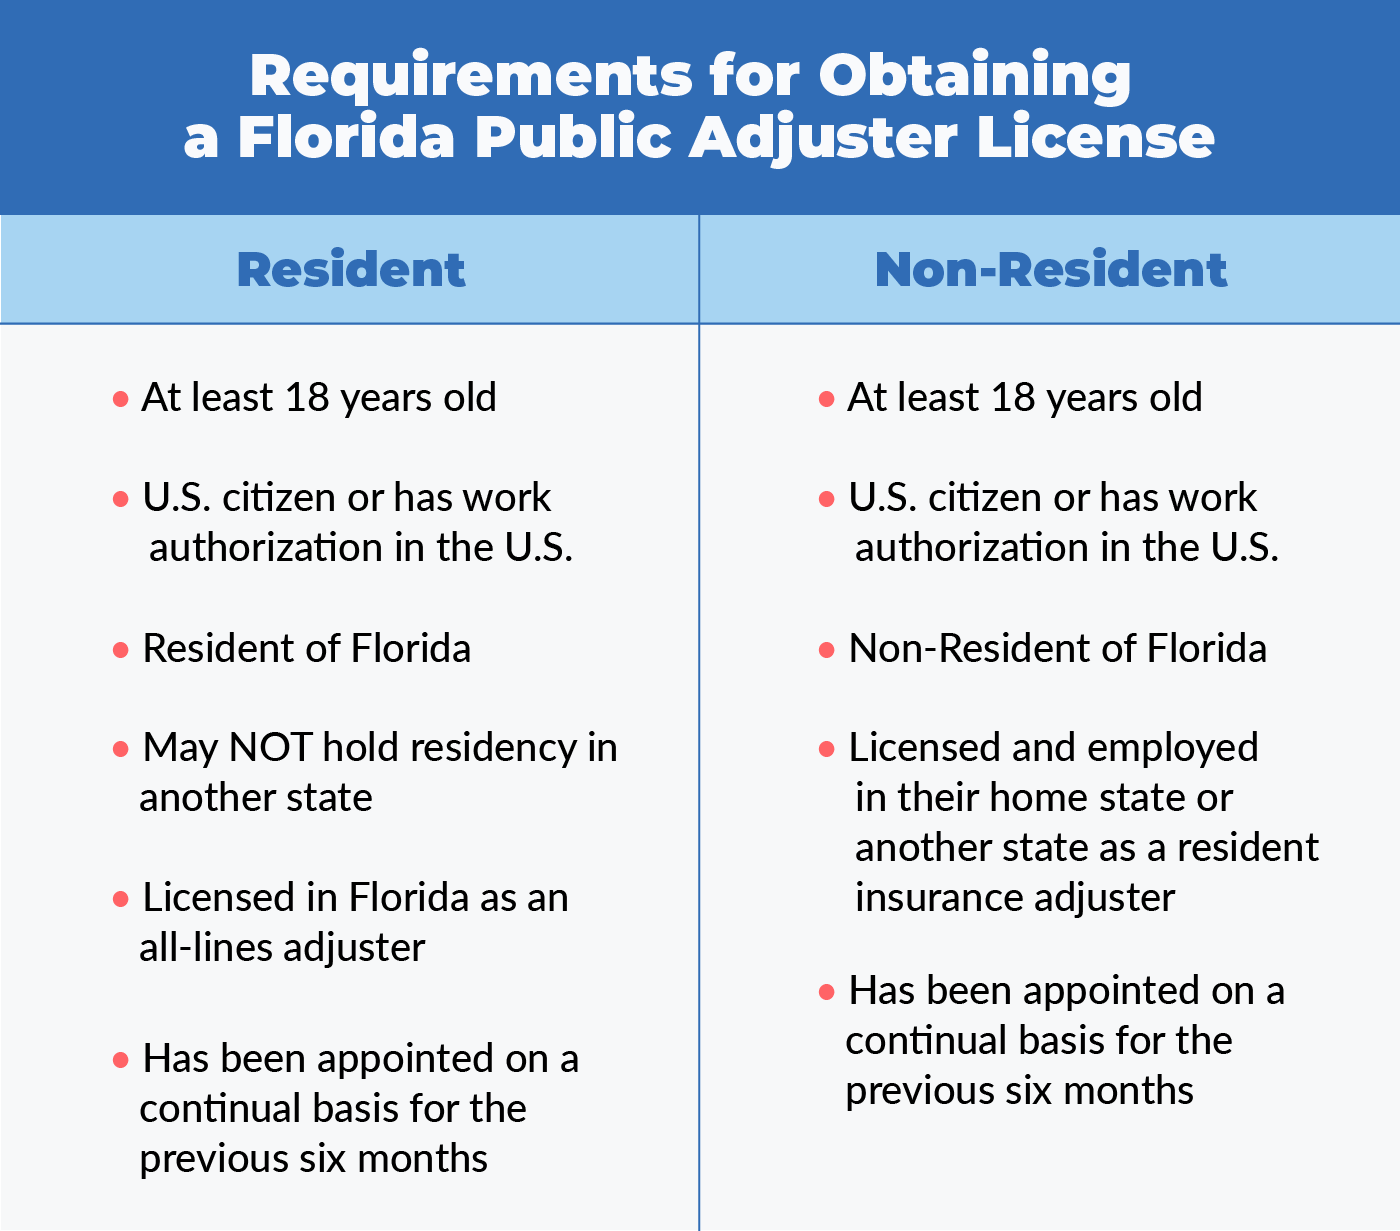 chart that shows the difference between a resident and non-resident Florida public adjuster license requirements